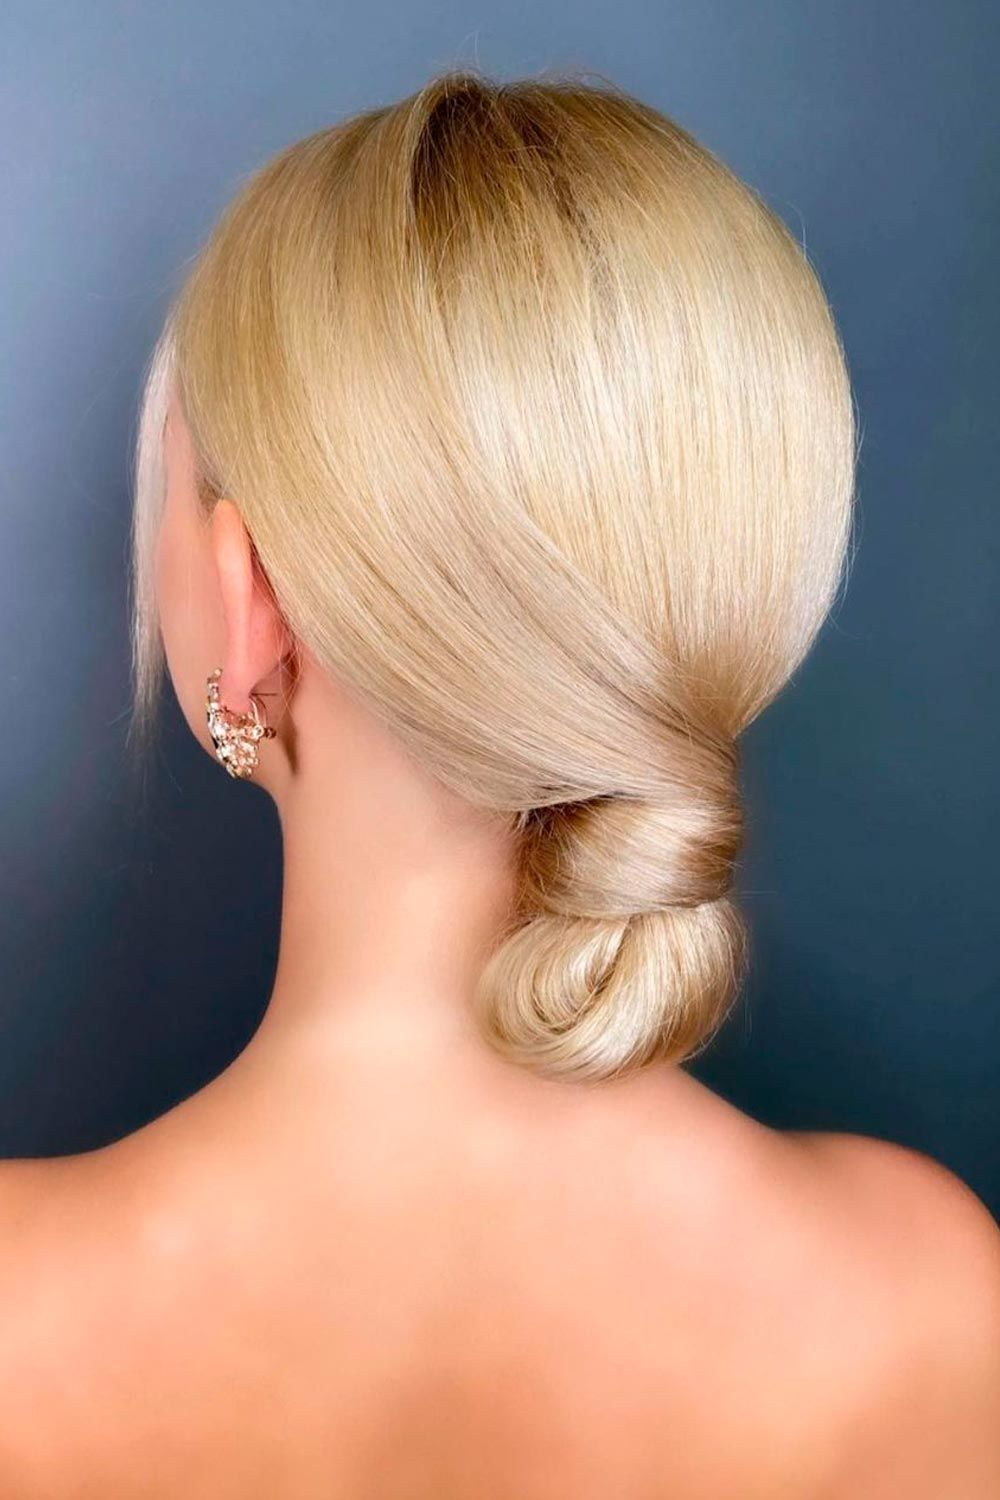 Updo Styles For Christmas